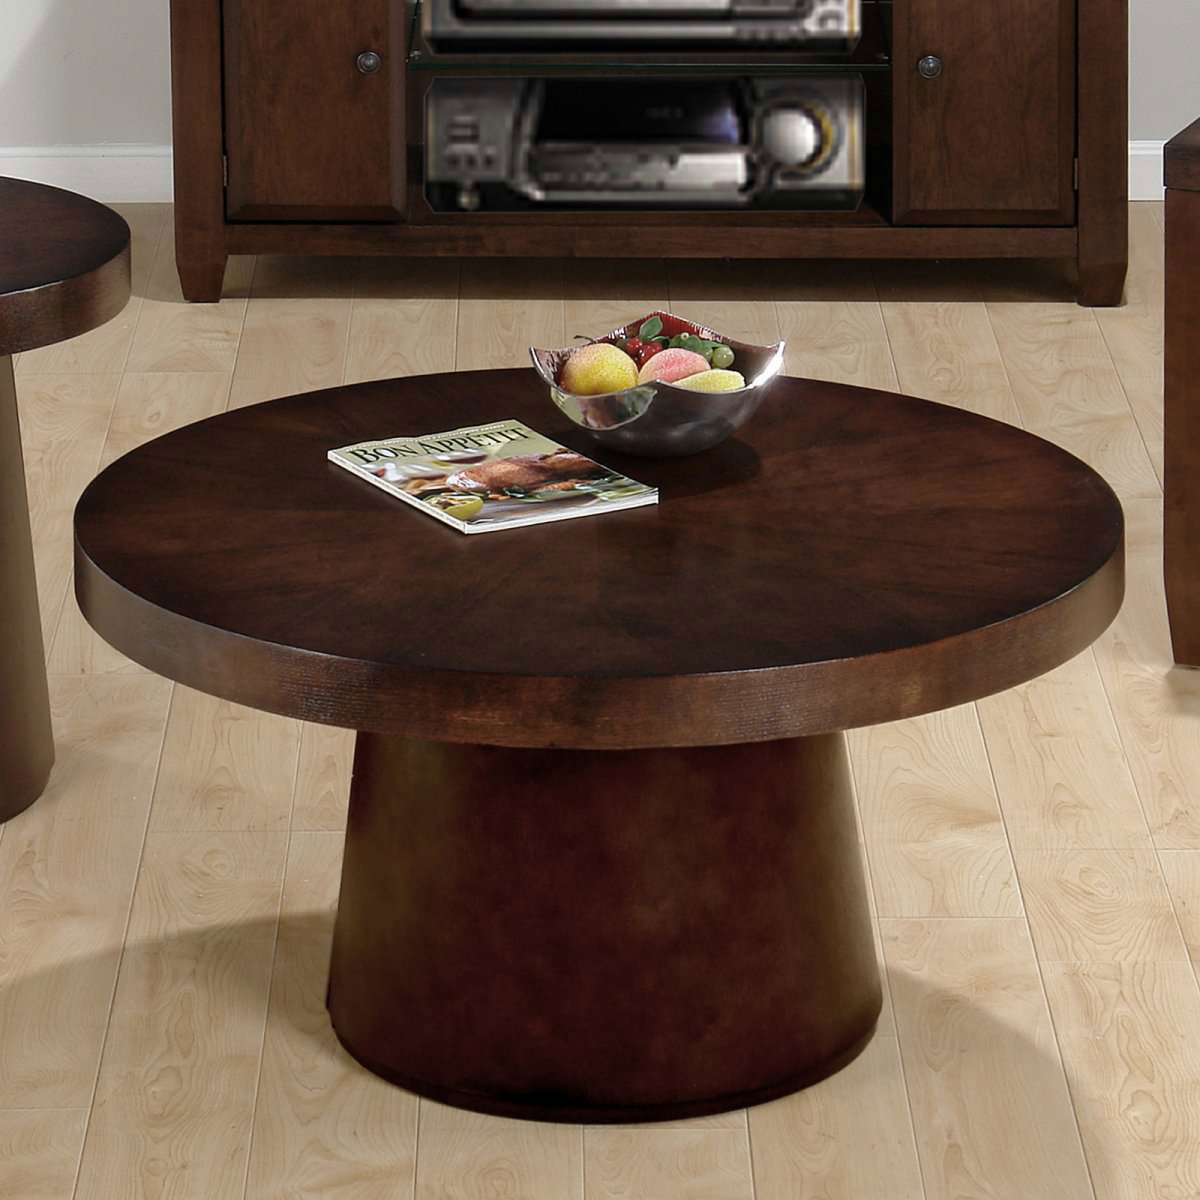 unique round coffee tables the new way home decor small black wood end table lamps and floor north shore armoire ashley millennium untreated furniture leons dining sets sauder